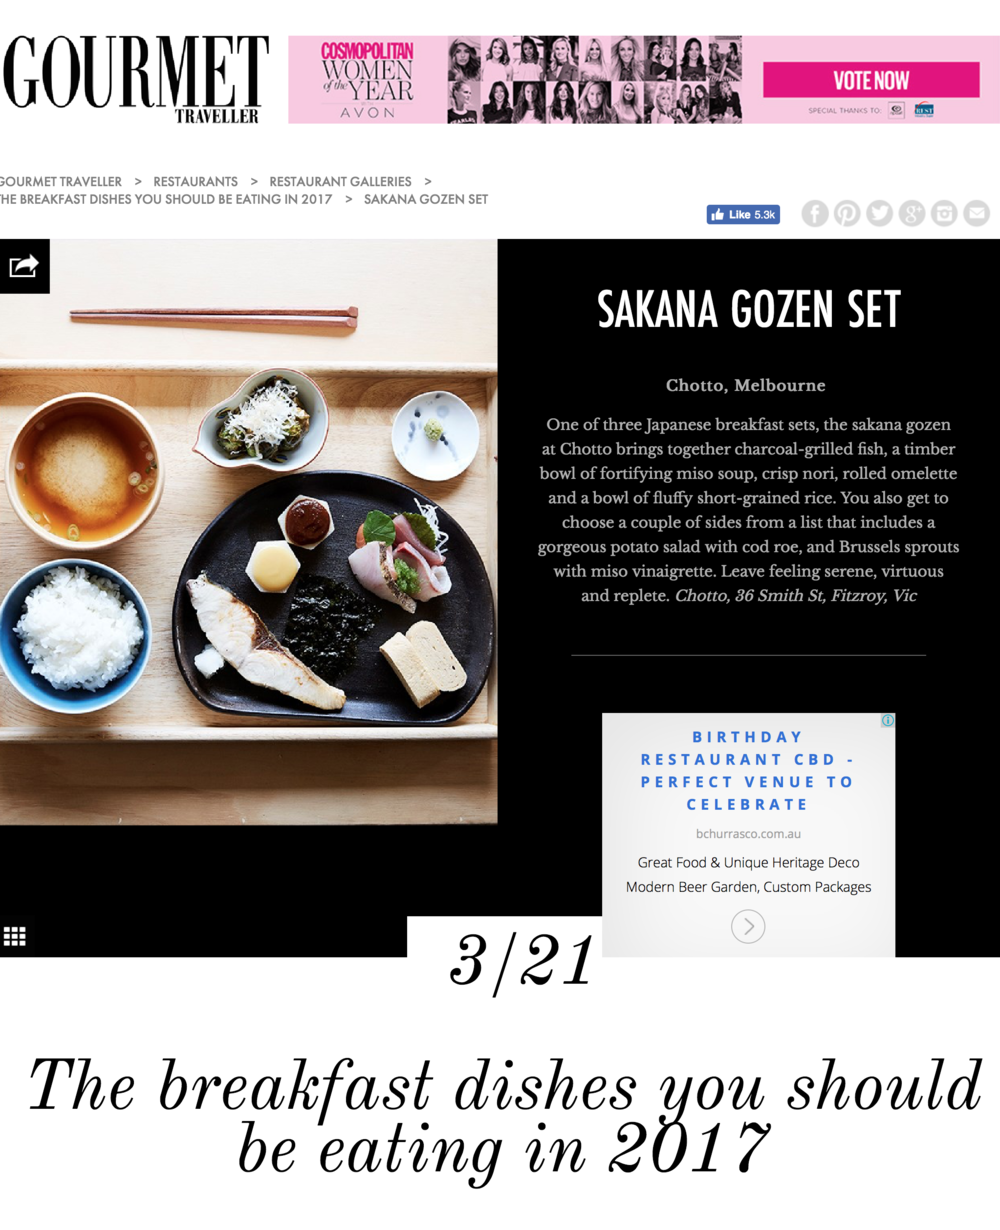 The breakfast dishes you should be eating in 2017 [Australian Gourmet Traveller]